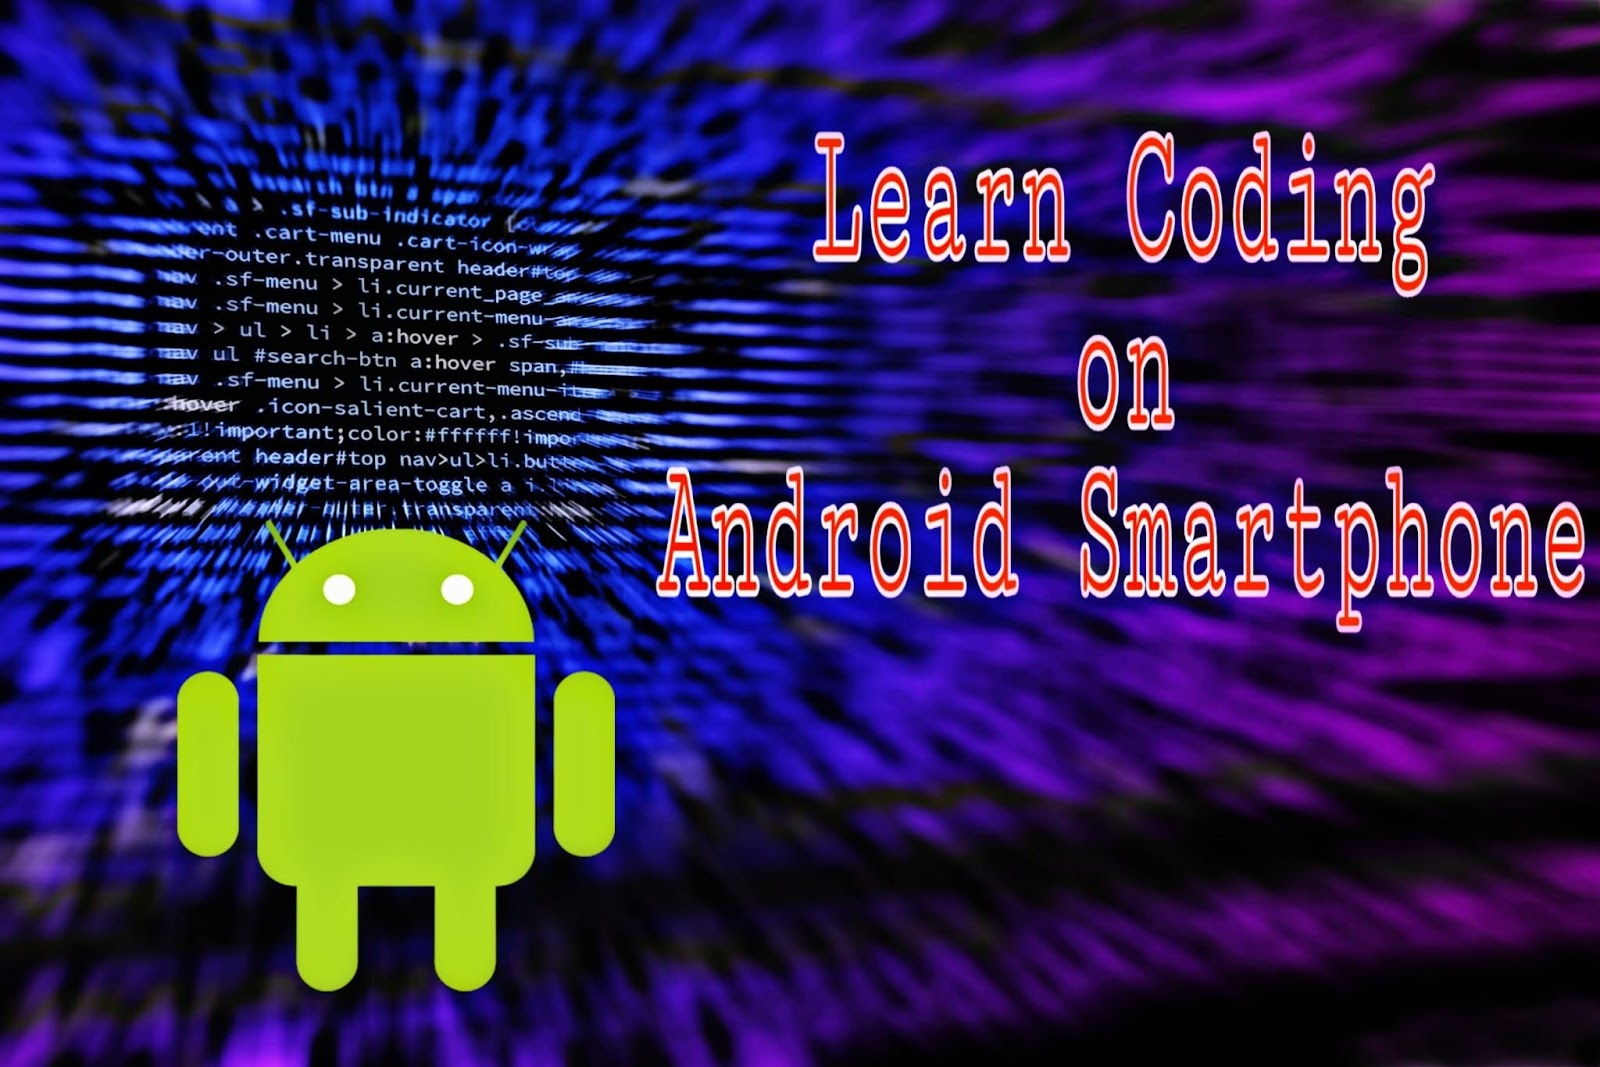 Android smartphone par Coding kaise sikhe ?